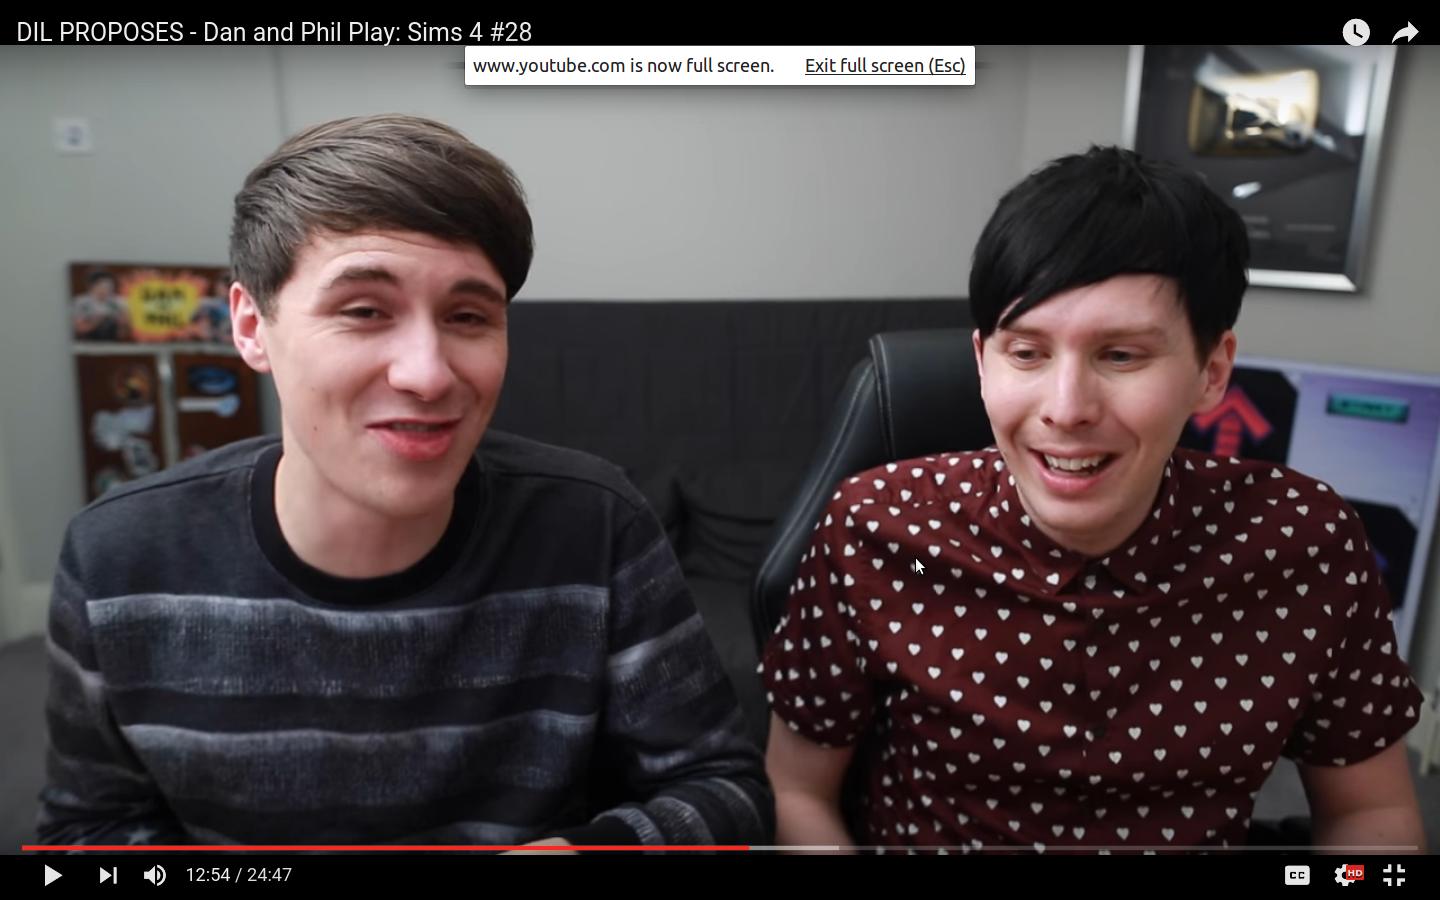 Do You Believe in Phan?